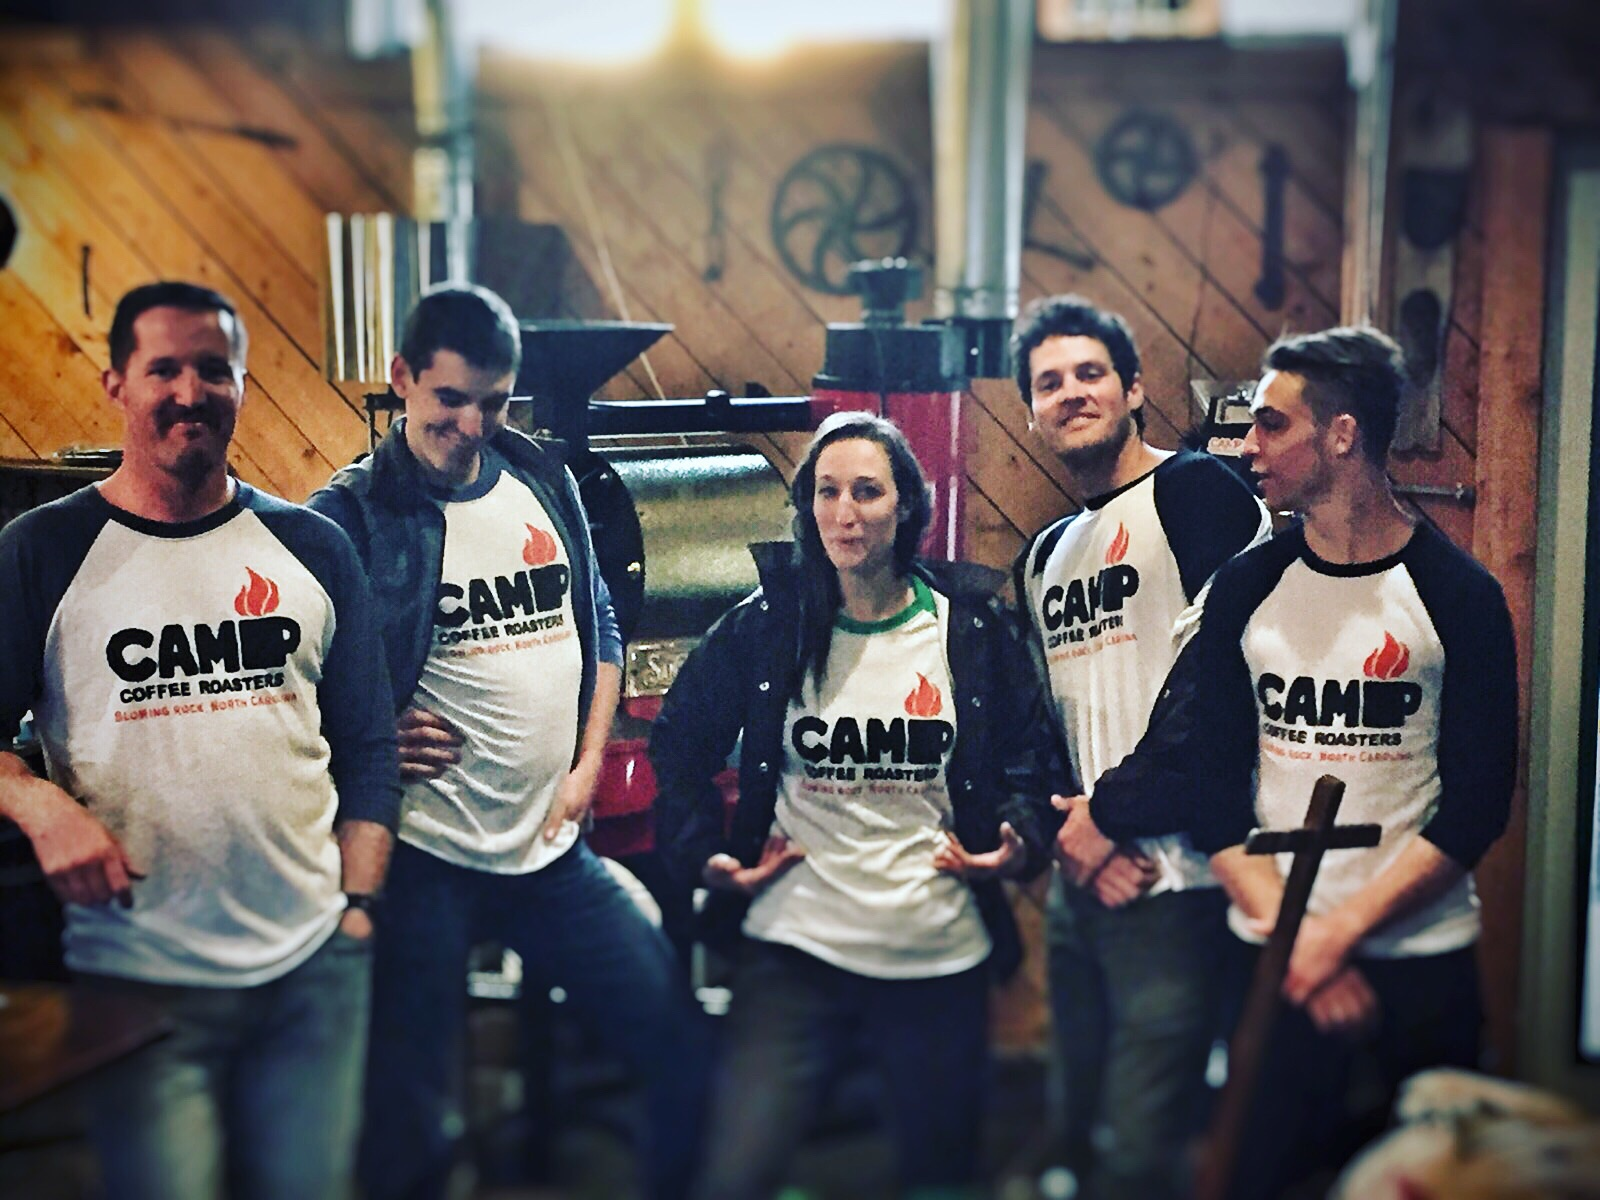 #teamcamp striking a pose after an early morning coffee cupping